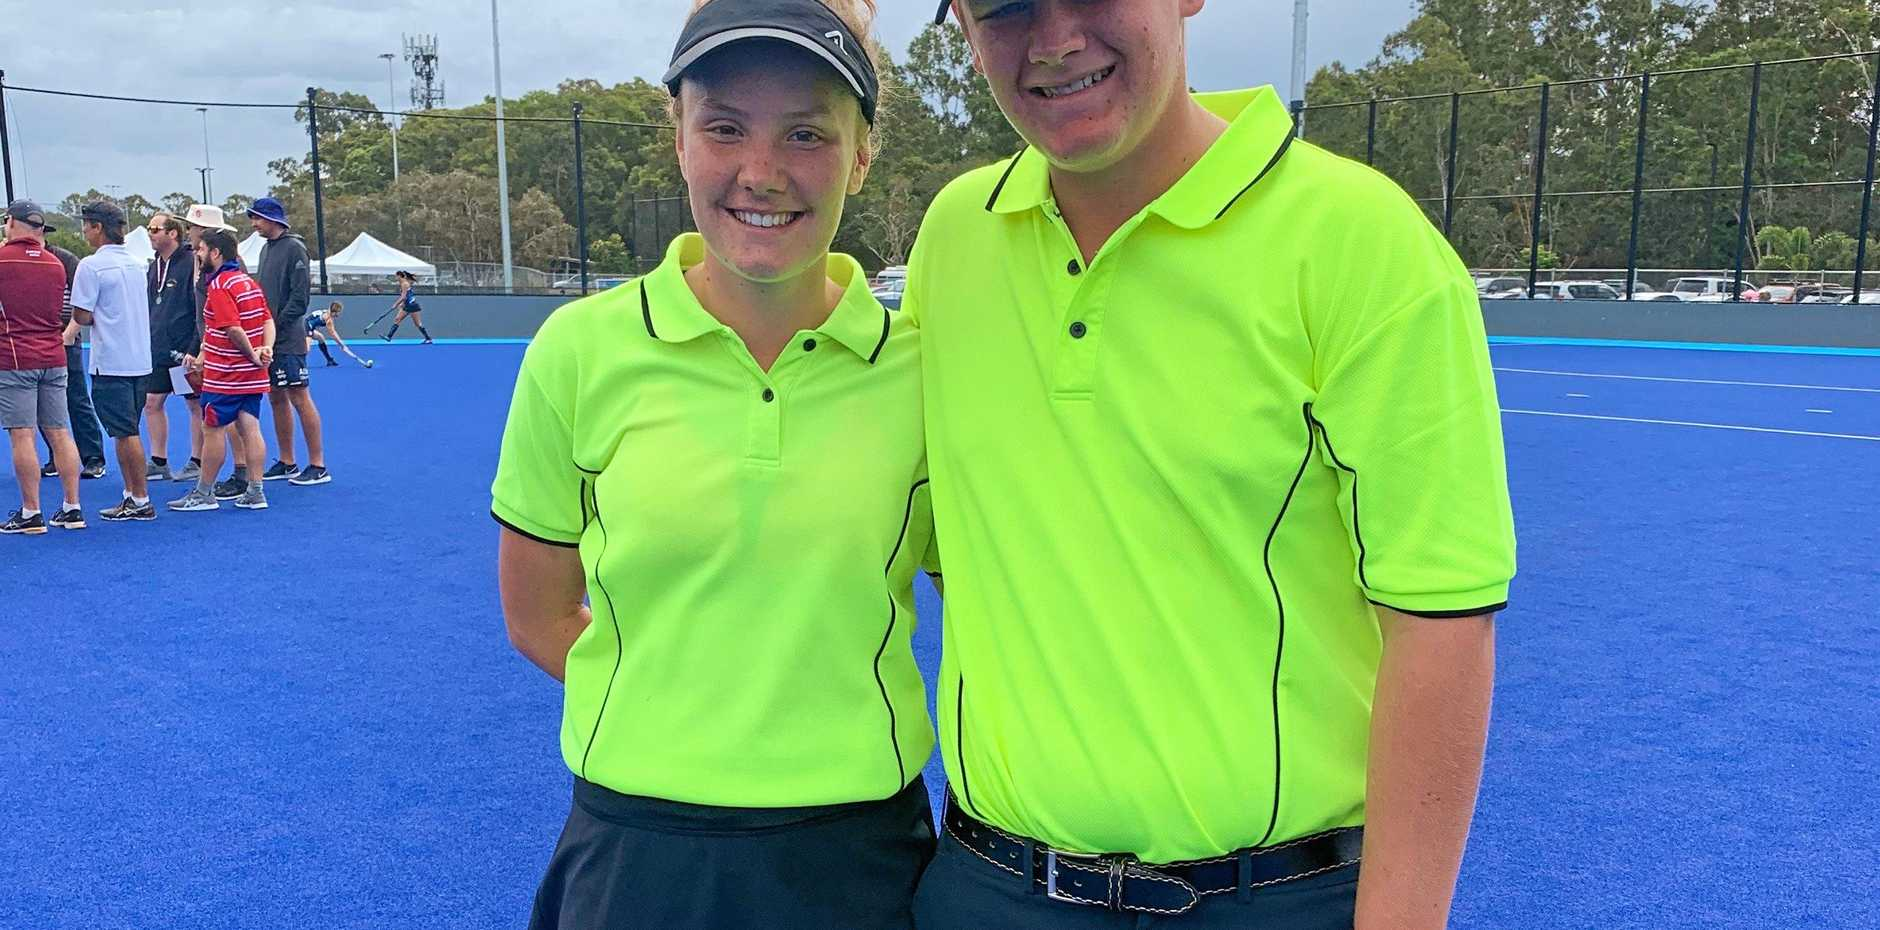 IN CHARGE: Ashley Spry (left) and Toowoomba's Jack Moore umpired the final of the the Qld Secondary Schools Championships (19 years). Moore has now been selected as an umpire with the Qld side that will tour New Zealand later this year.